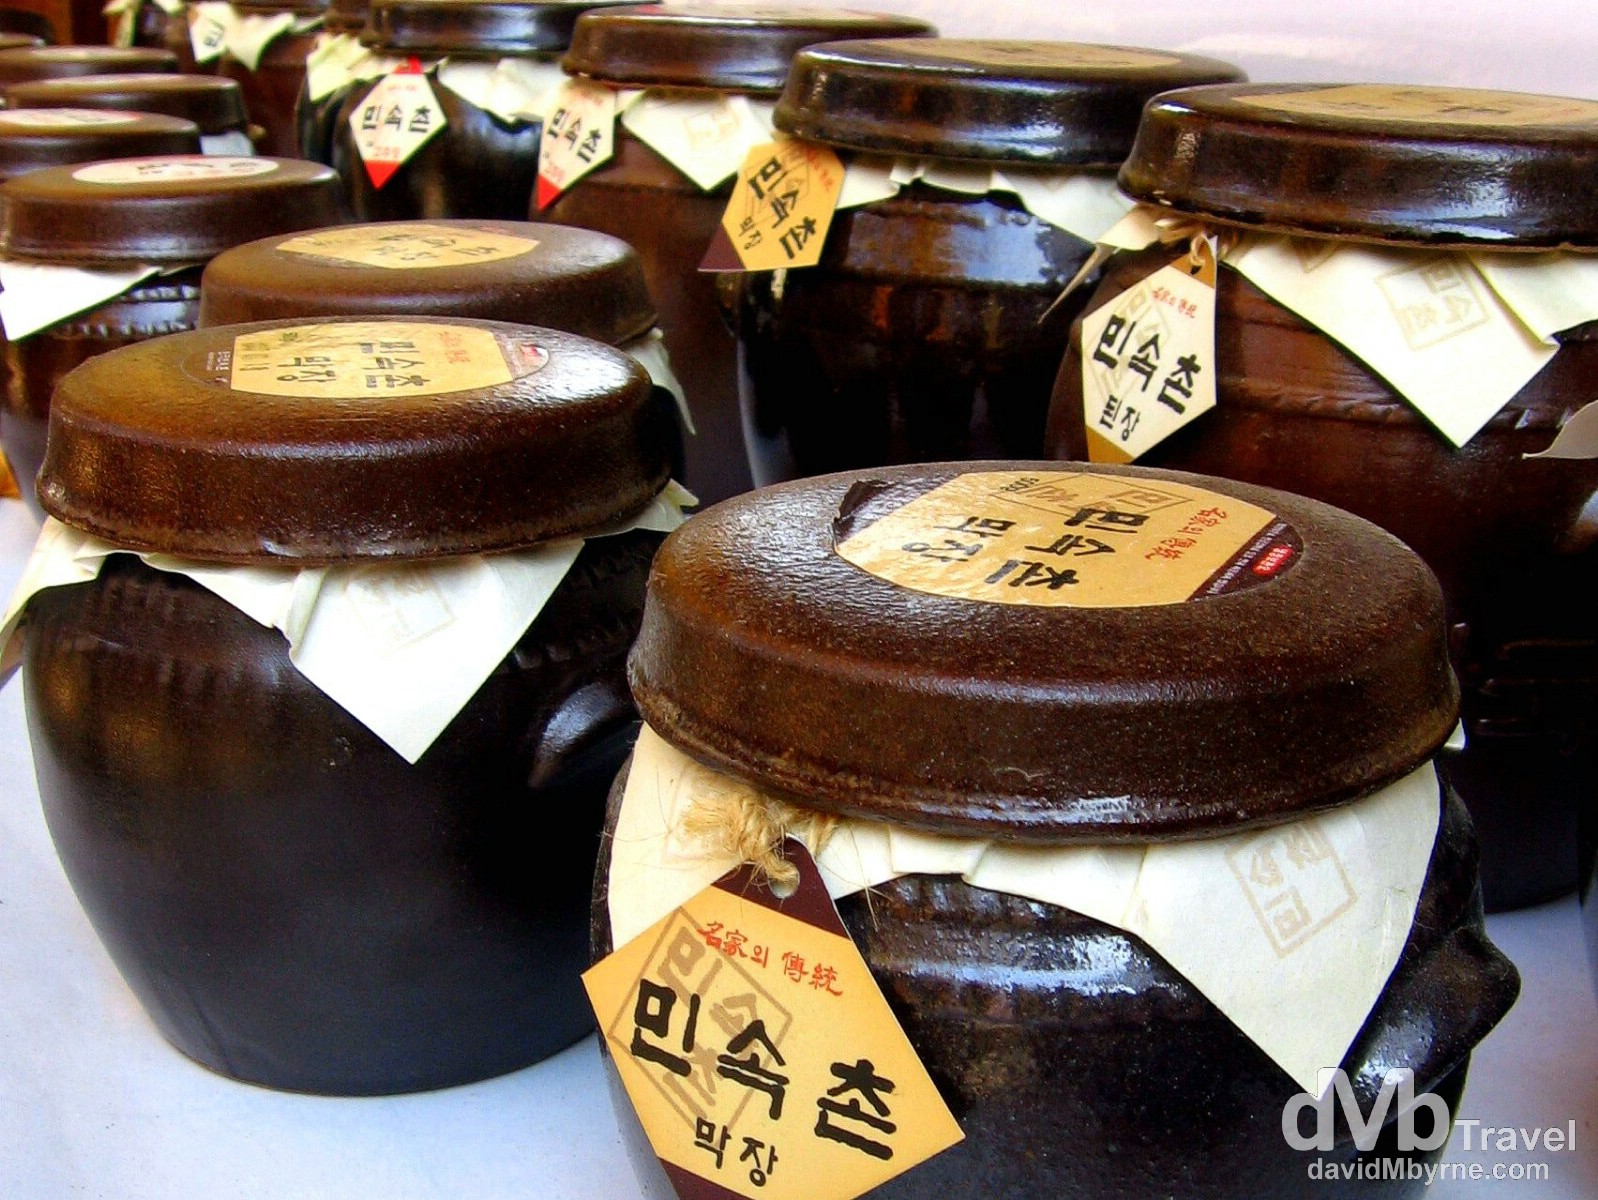 Traditional earthenware jars for sale in the Folk Village in Yongin, South Korea. November 7th, 2007.